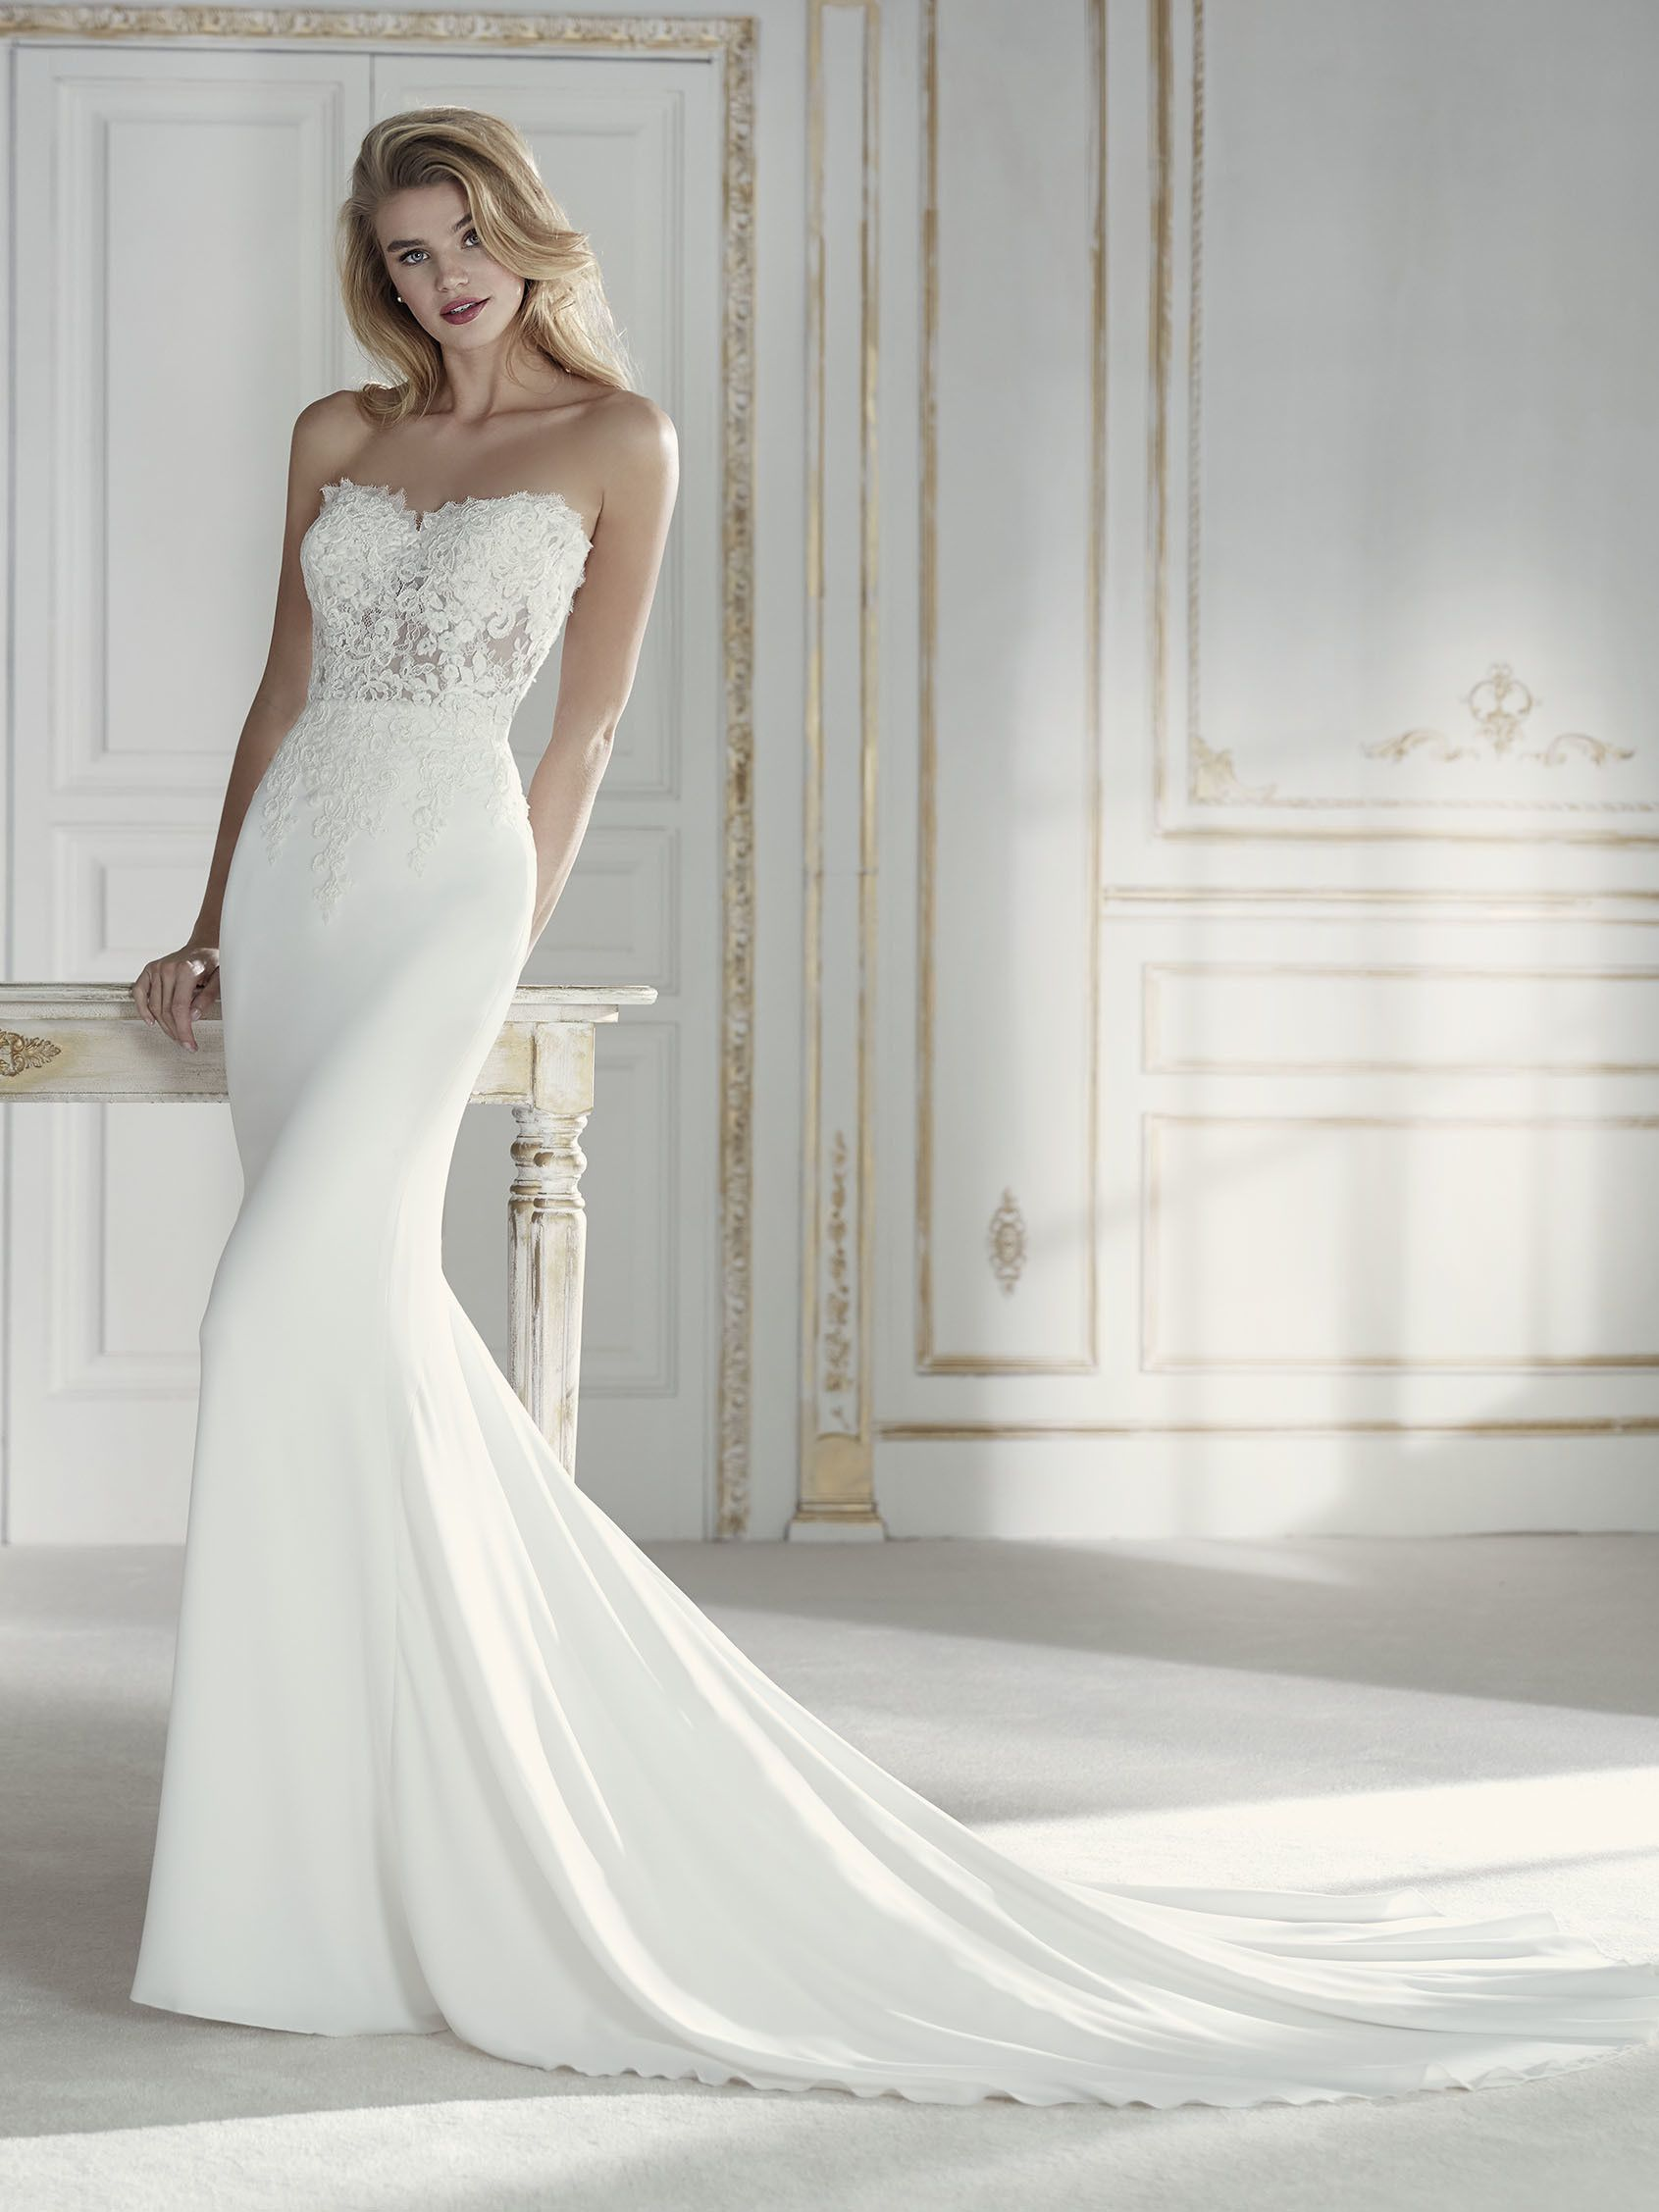 Low back lace mermaid wedding dress  Femininity takes the form of a wedding dress with this amazing